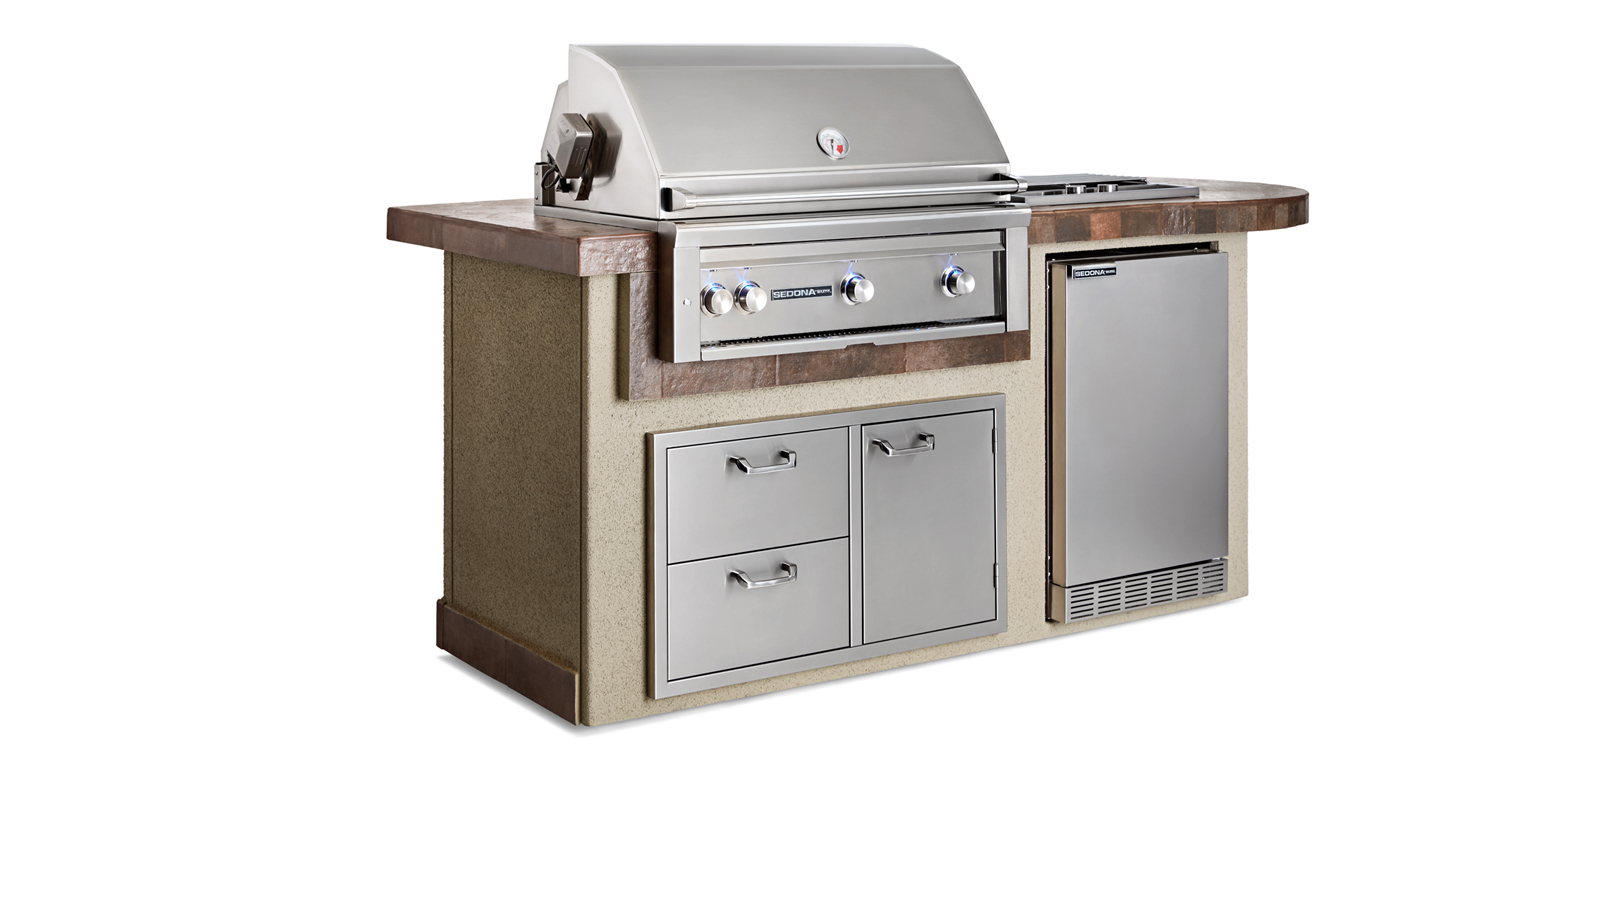 "Lynx Contemporary Gray Deluxe Island Package with 36"" Sedona Grill with Rotisserie (L2600C)- LP Gas"